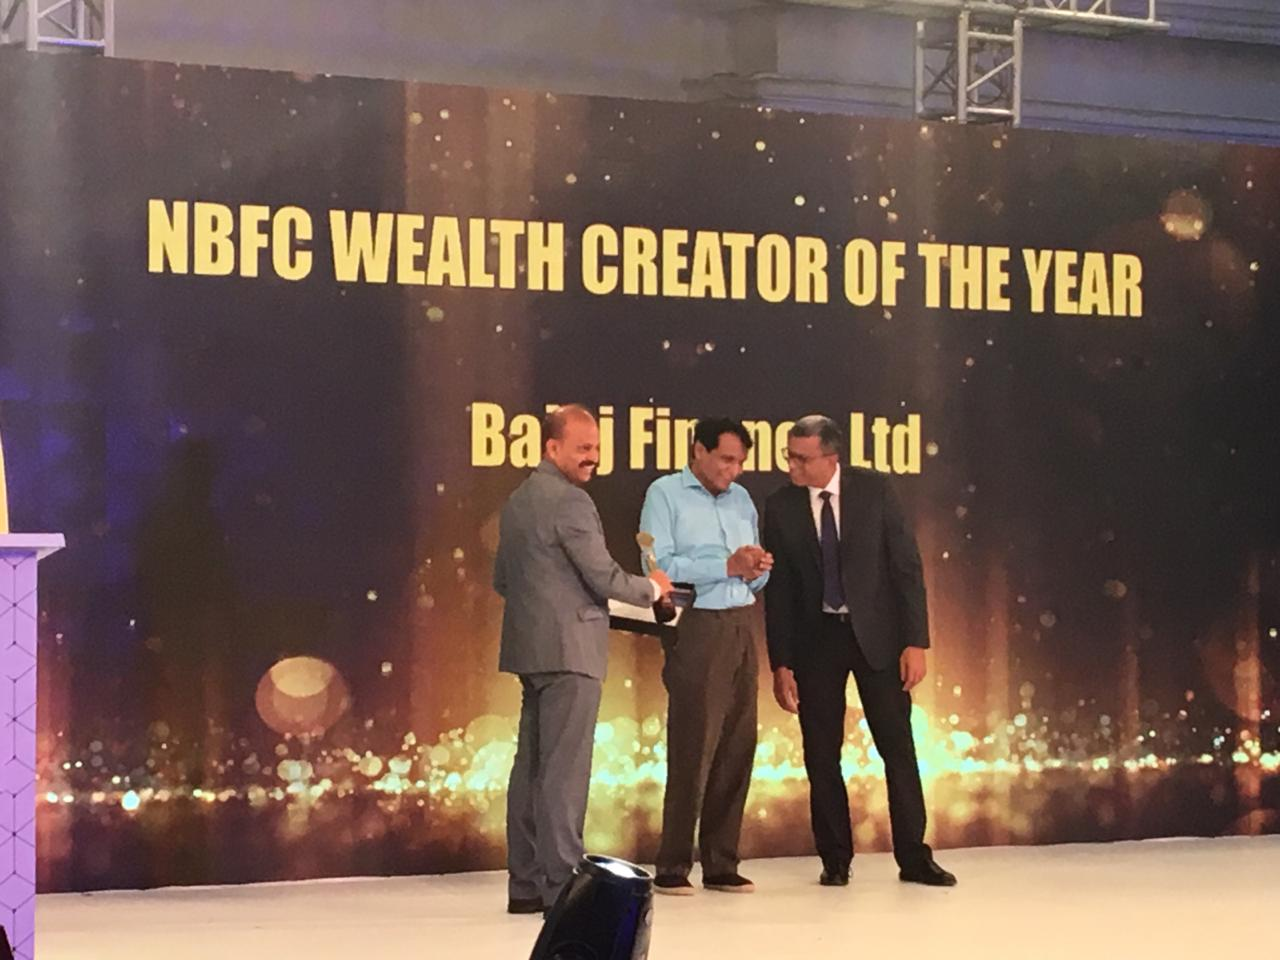 NBFC wealth creator of the year: Bajaj Finance Limited | Bajaj Finance Ltd, a subsidiary of Bajaj Finserv, is one of the fastest growing NBFCs dealing in Consumer Finance, SMEs (Small and Medium-sized Enterprises) and Commercial Lending, and Wealth Management. Founded by Rahul Bajaj in 1987, the Pune-headquartered NBFC is now led by Managing Director Rajeev Jain. In Q2 FY19, its consolidated net profit grew 54 percent to Rs 923 crore. Its assets under management grew 52 times over the last 12 years. (Image: Moneycontrol)